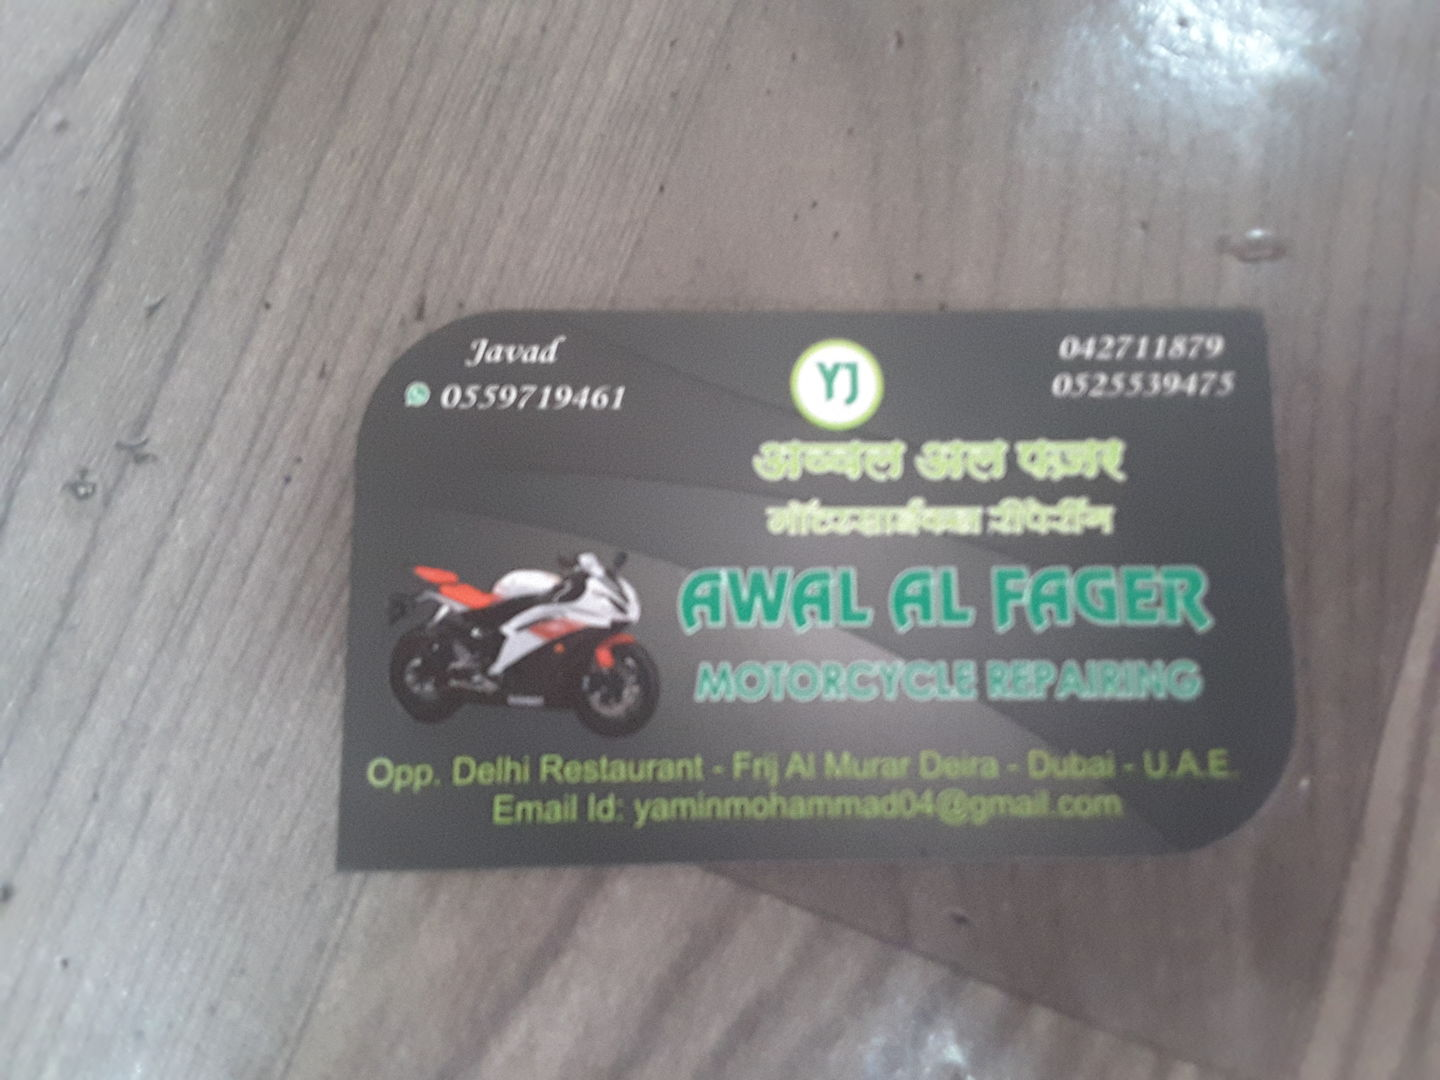 HiDubai-business-awal-al-fager-motorcycle-repair-transport-vehicle-services-motorycle-service-repair-al-murar-dubai-2